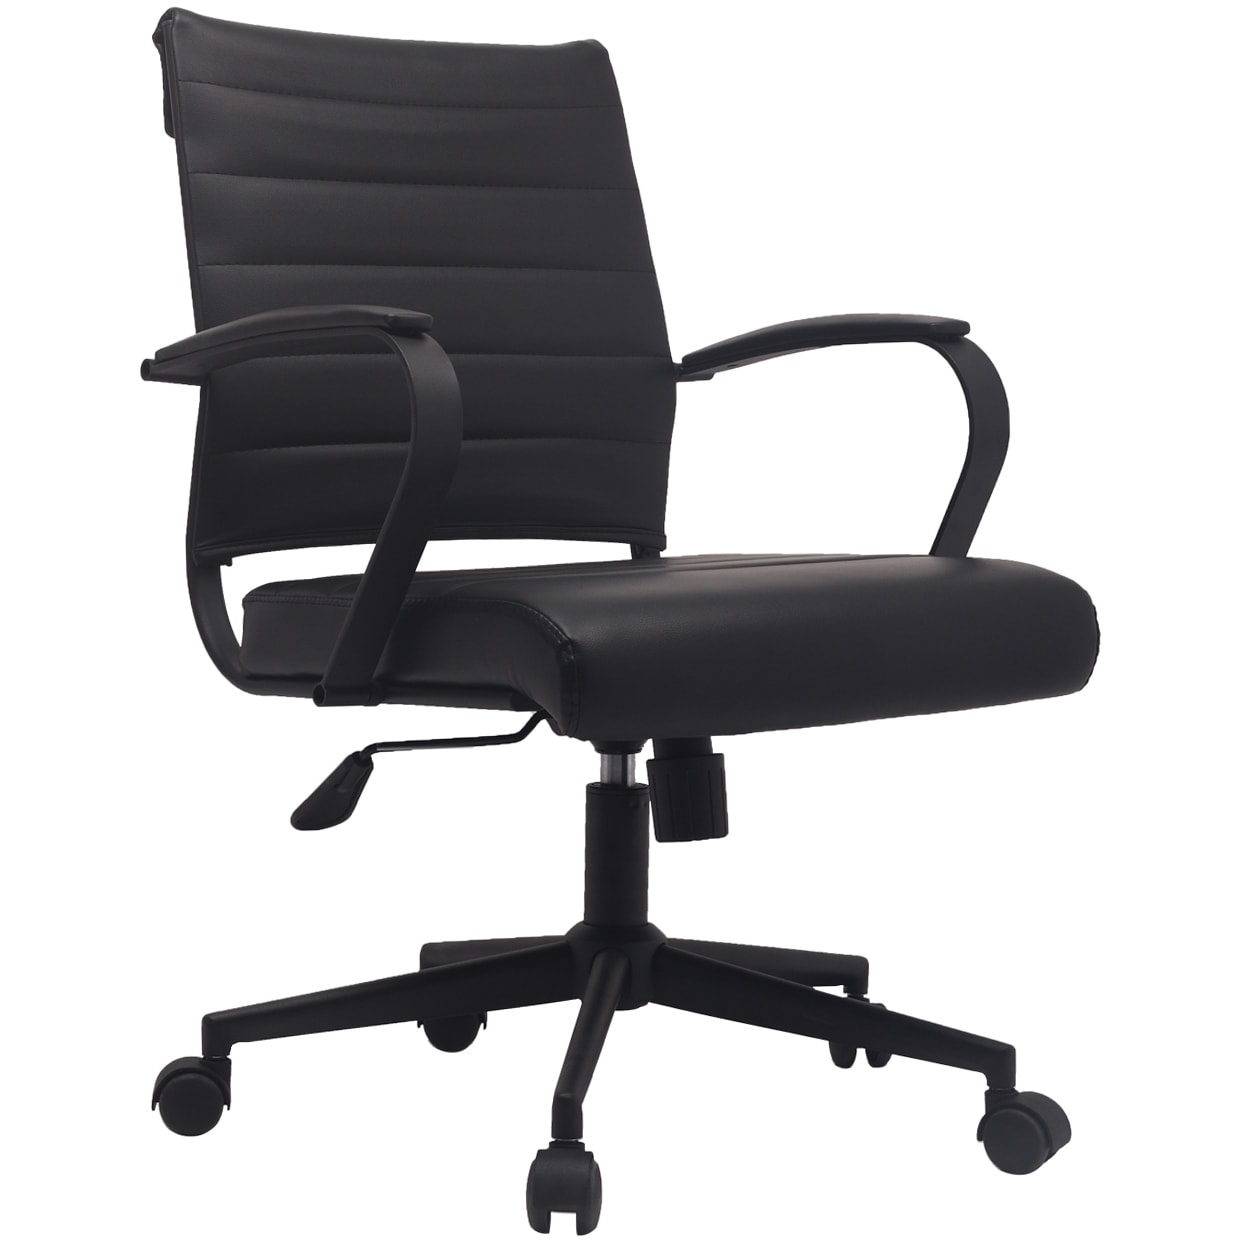 2xhome Office Chairs Mid Back Ribbed